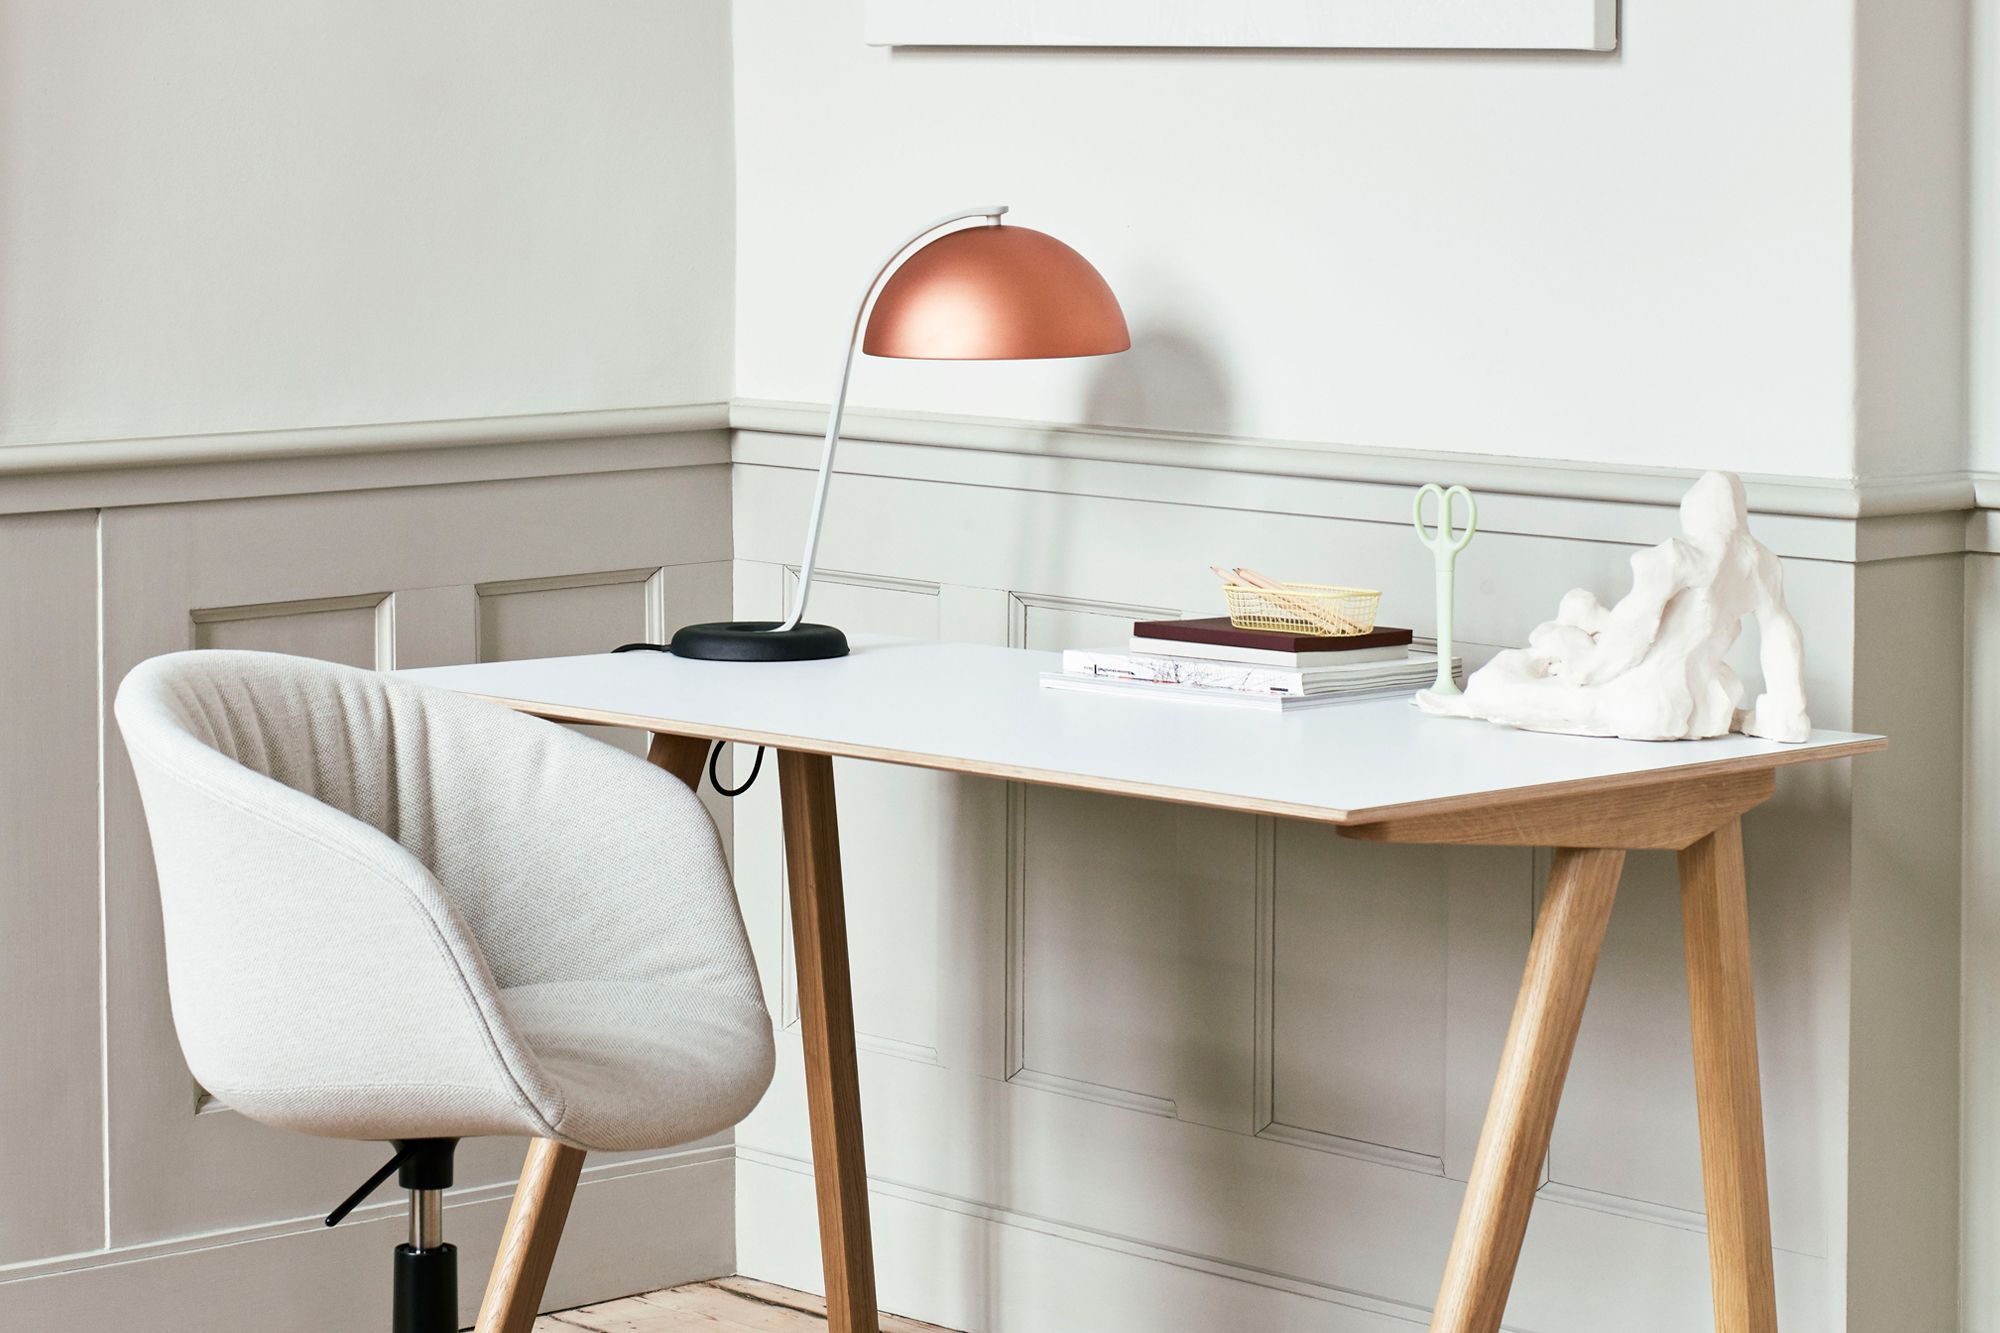 Hay Cloche table lamp by Lars Beller Fjetland Photo: Courtesy of Hay